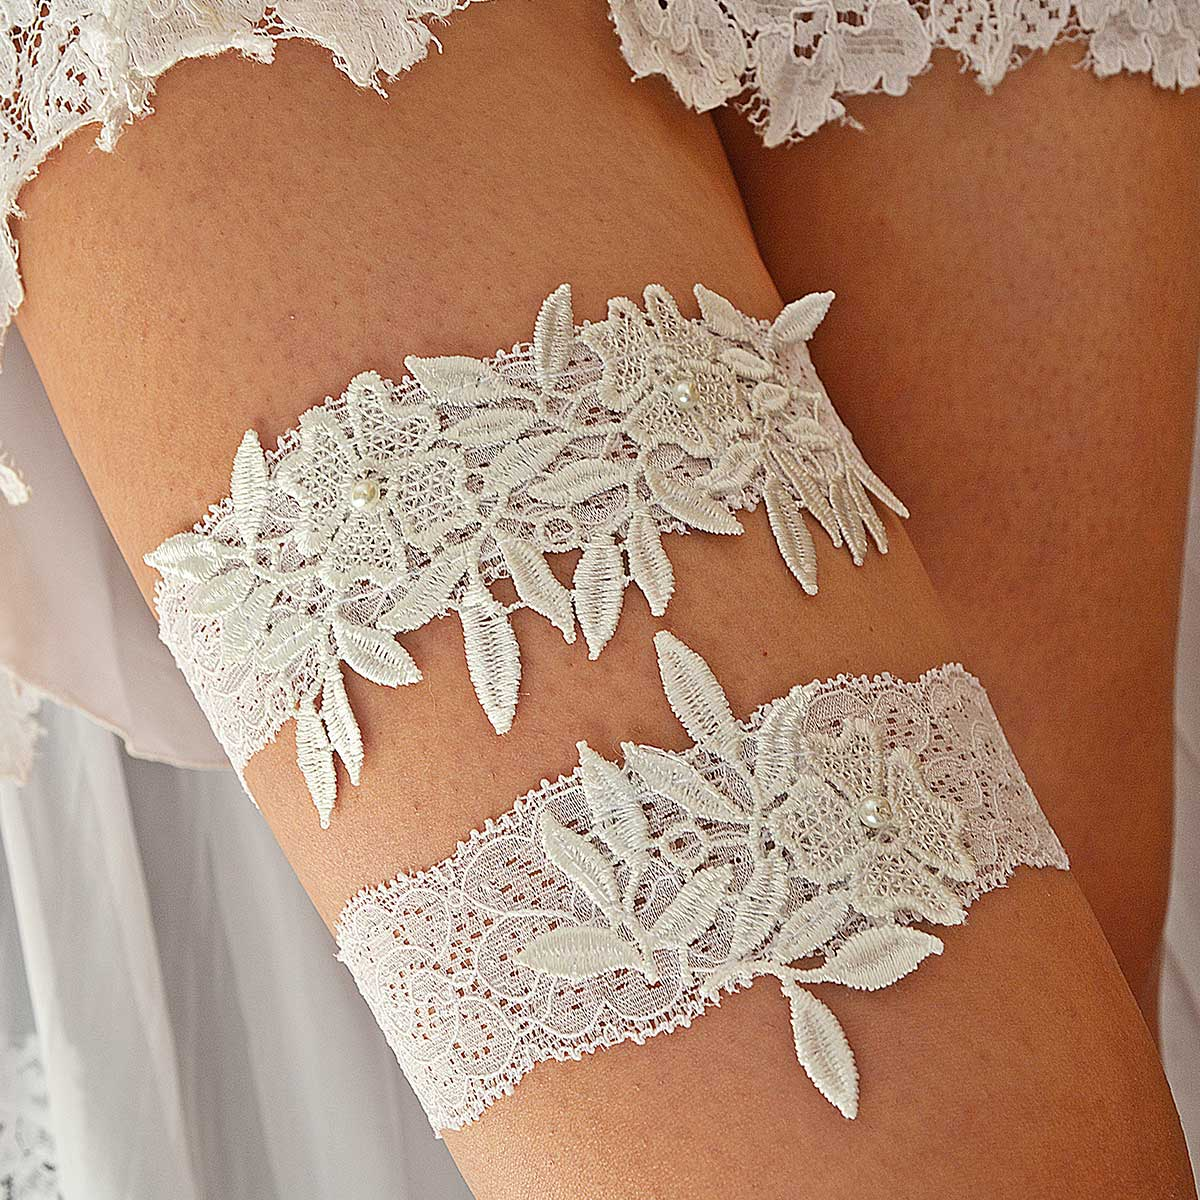 Handmade White Bridal Garter With Pearls & Flower Appliques